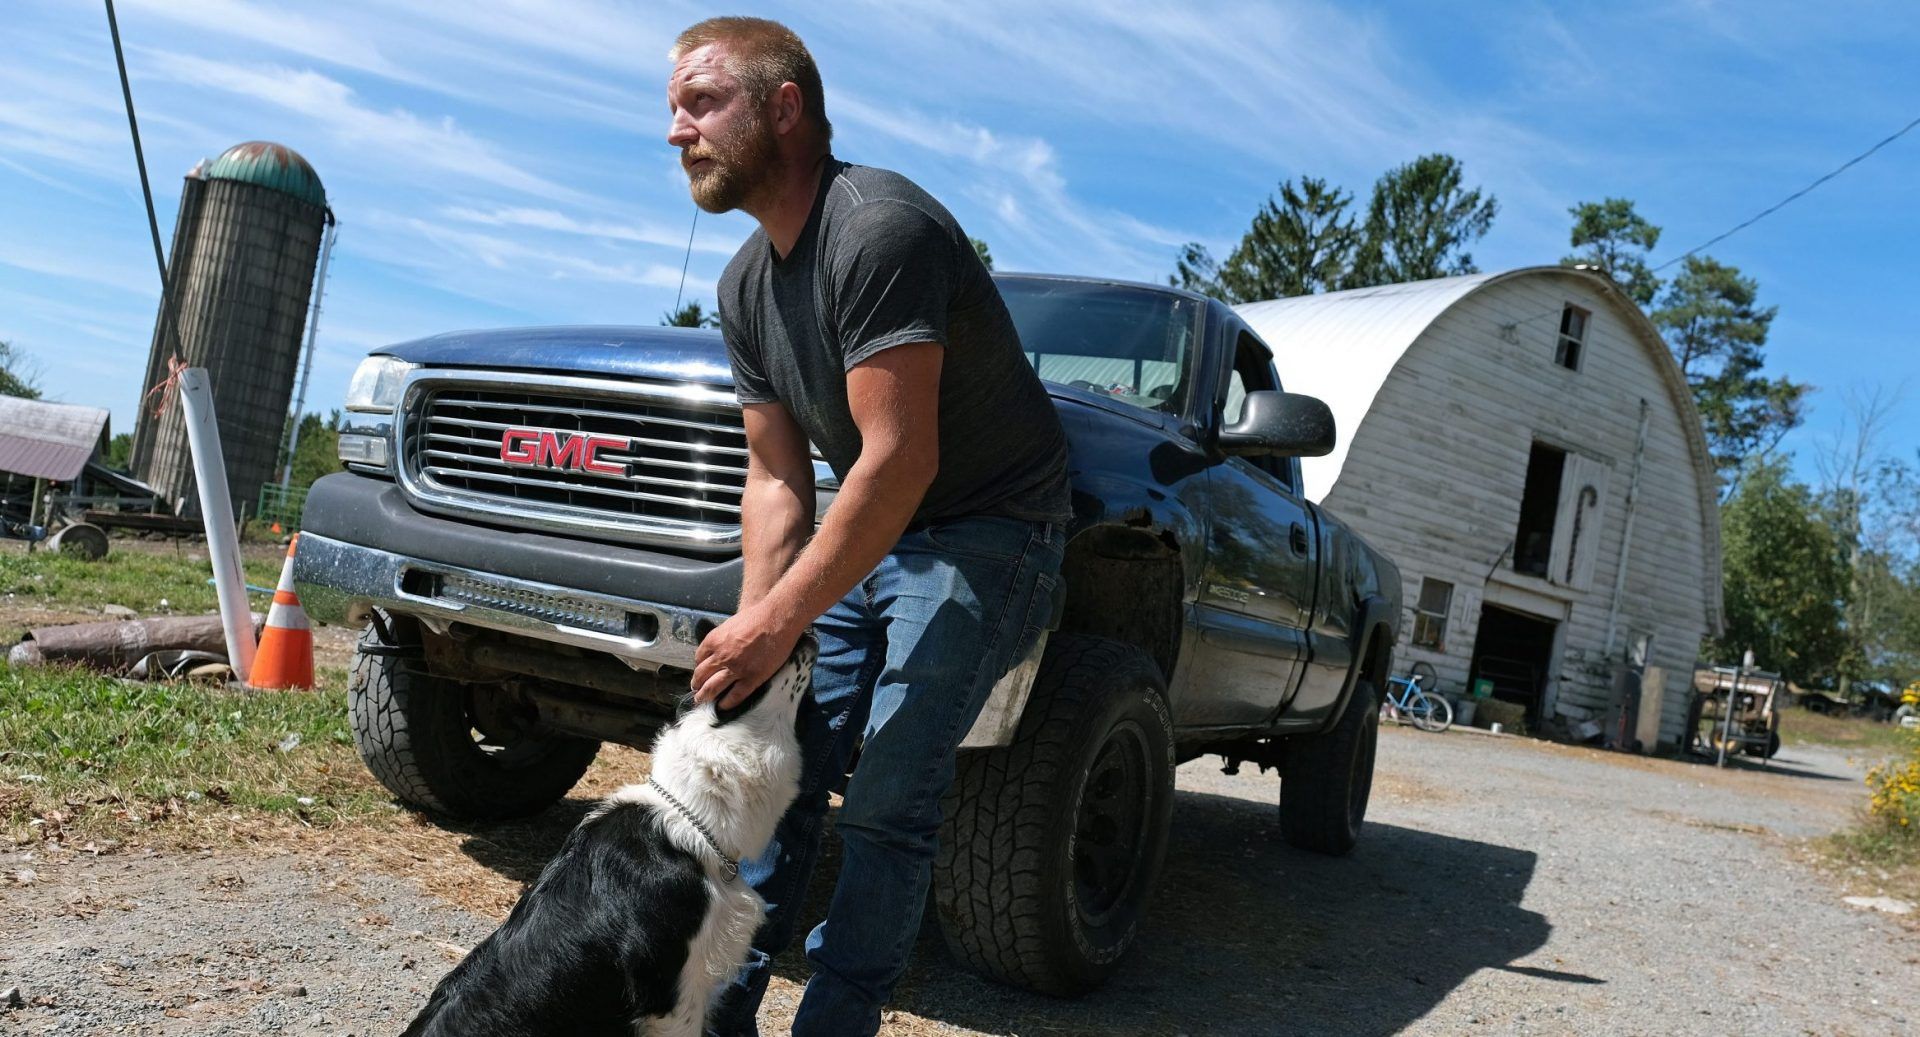 Grain farmer Jesse Poliskiewicz pets a dog while visiting his father's farm Sept. 20, 2019, in Upper Mount Bethel Township, Pennsylvania.